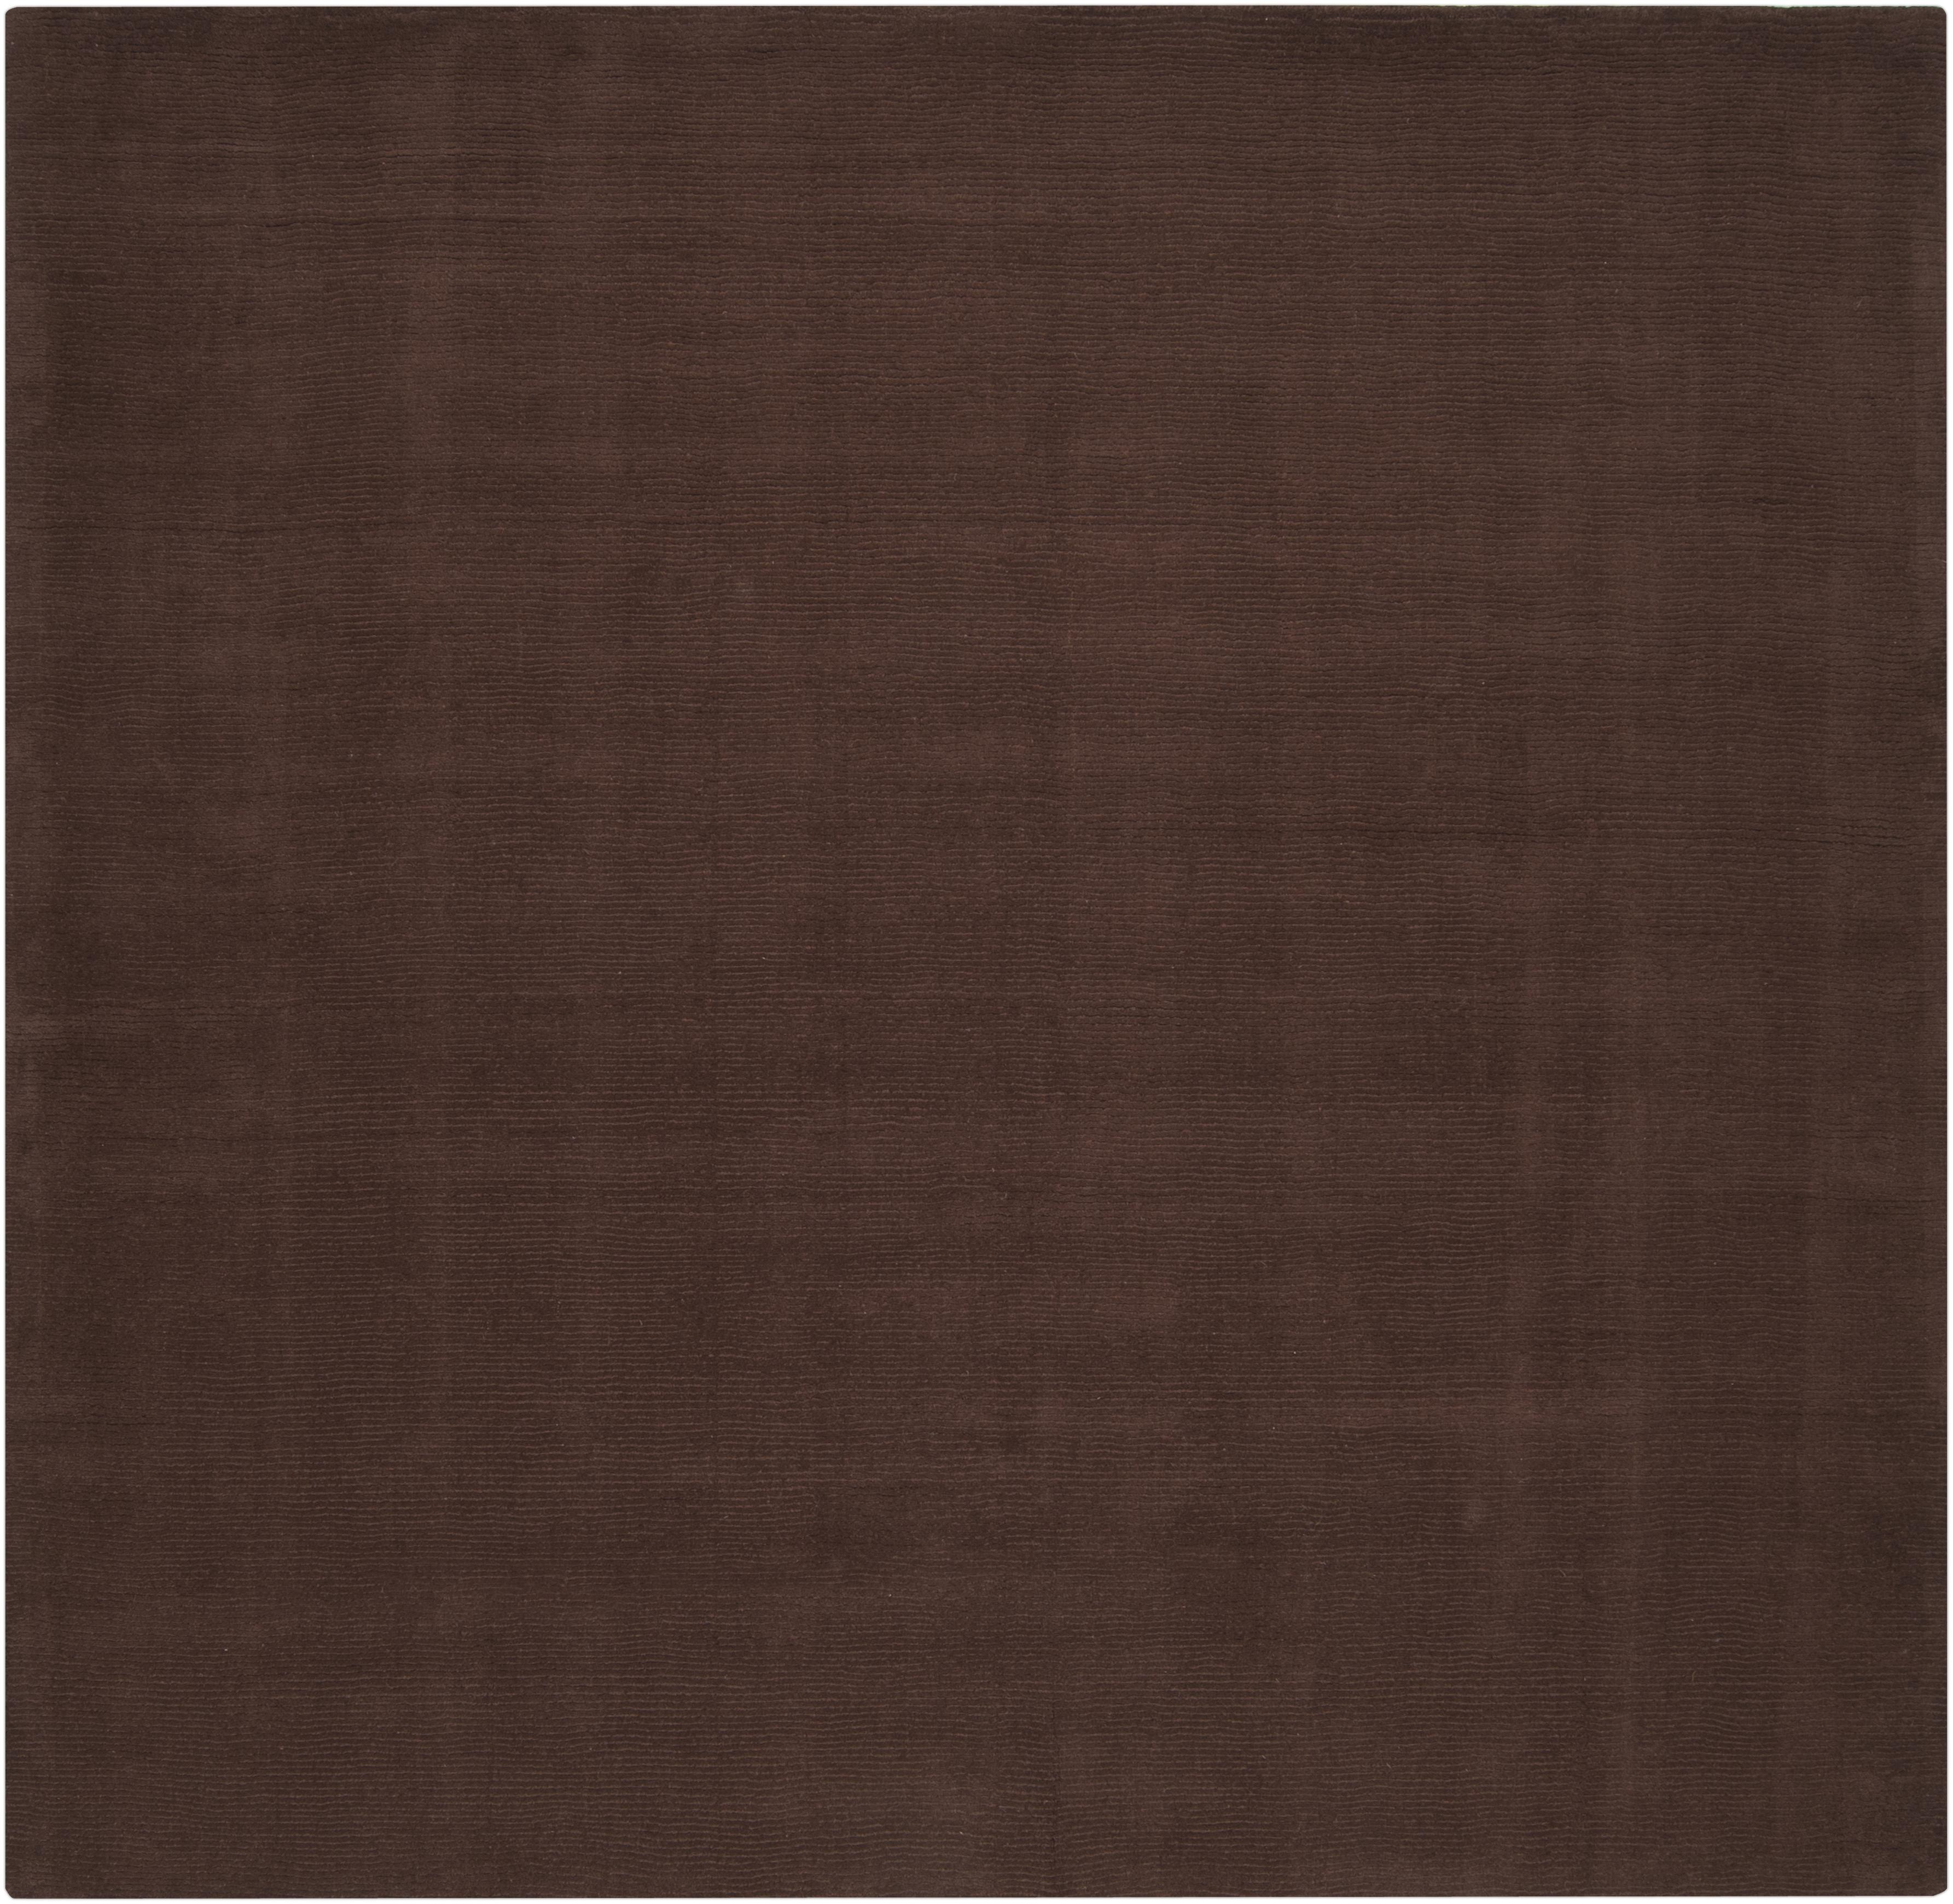 Surya Mystique 8' Square - Item Number: M334-8SQ